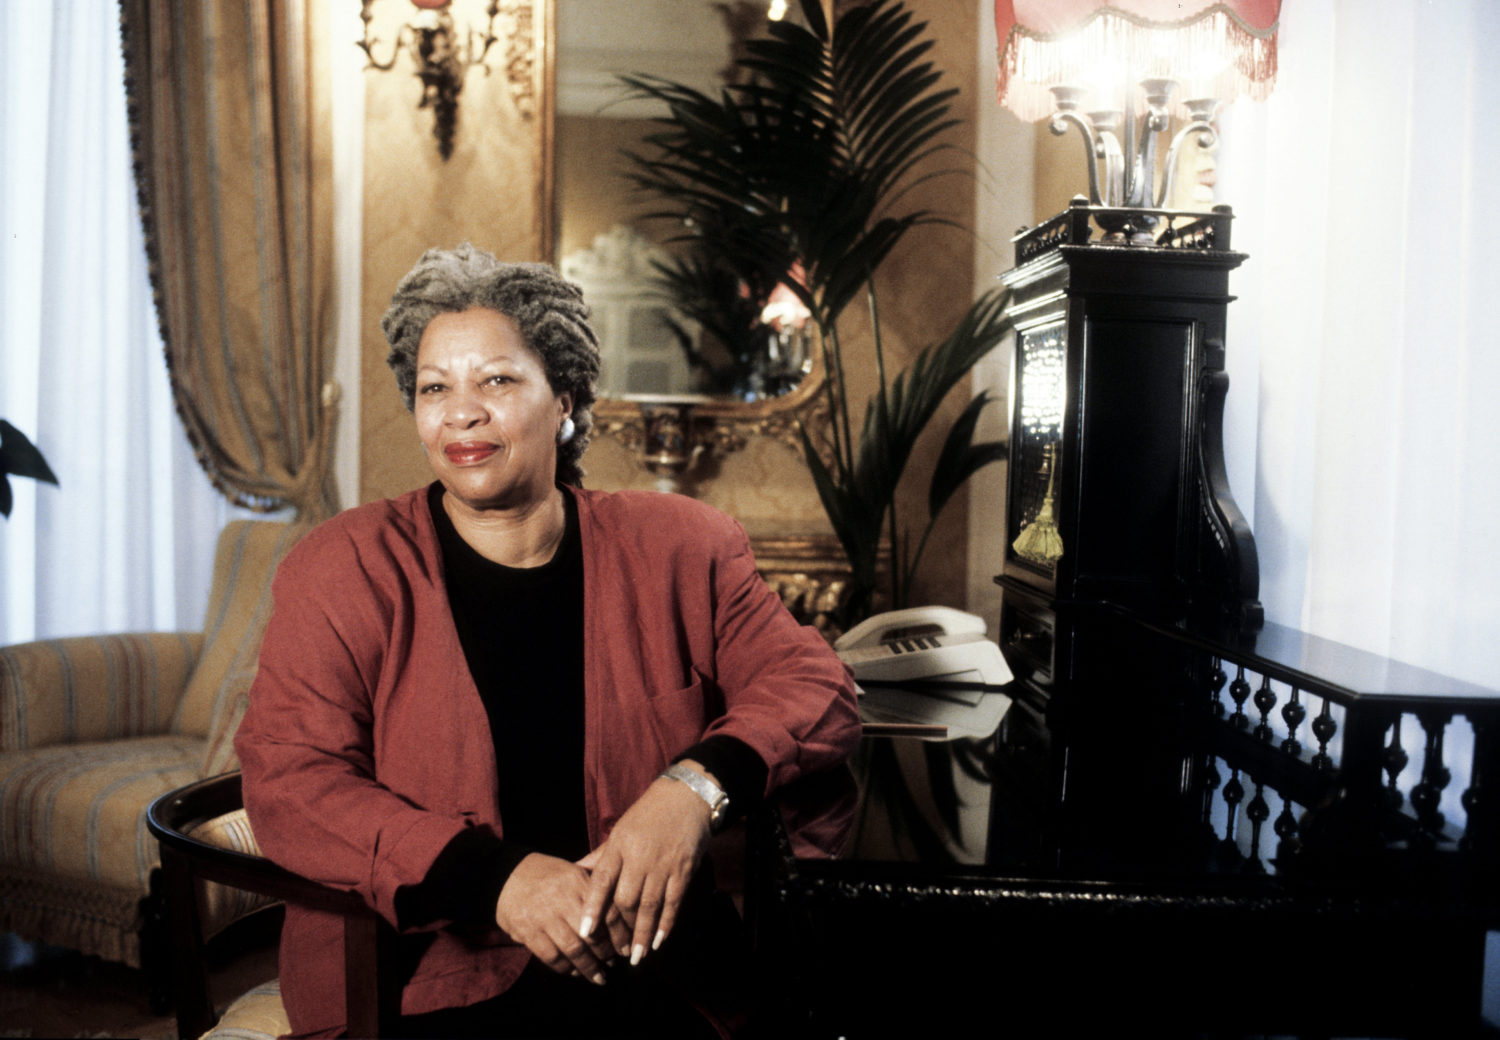 <i>Race Matters</i> by Toni Morrison, read by Camille Morineau - AWARE Artistes femmes / women artists